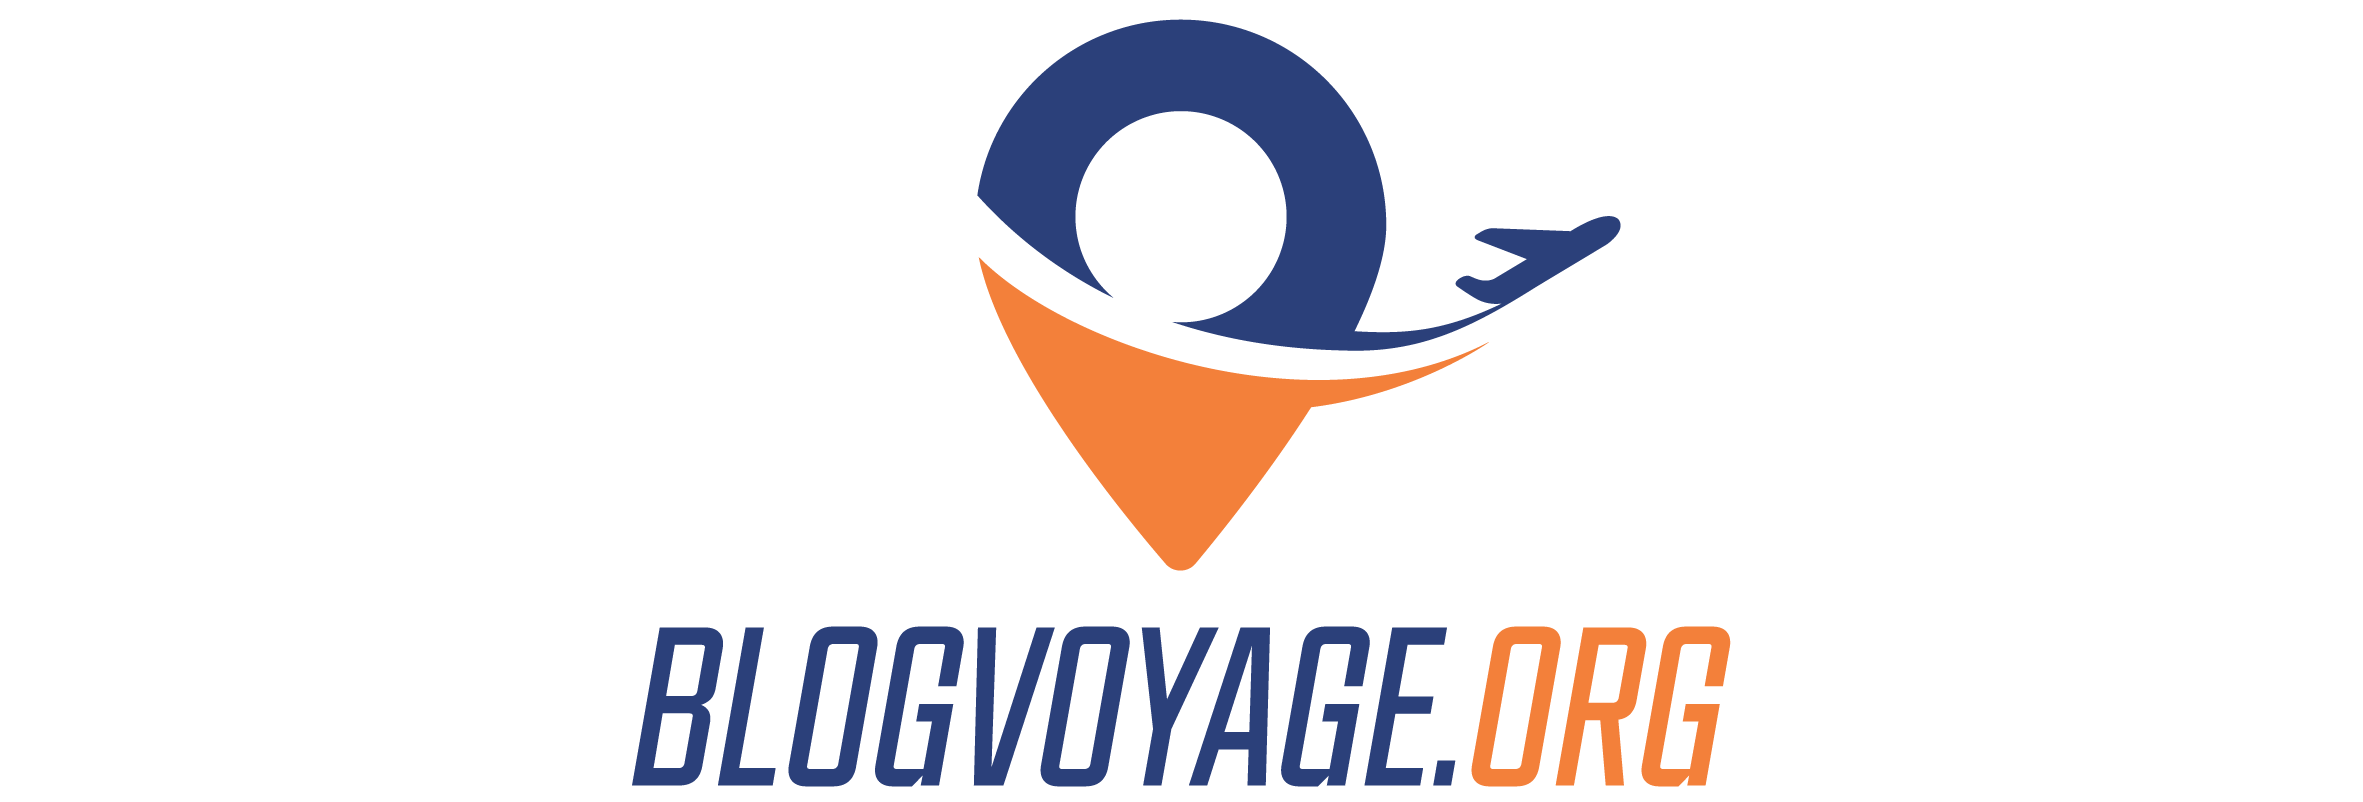 blogvoyage.org